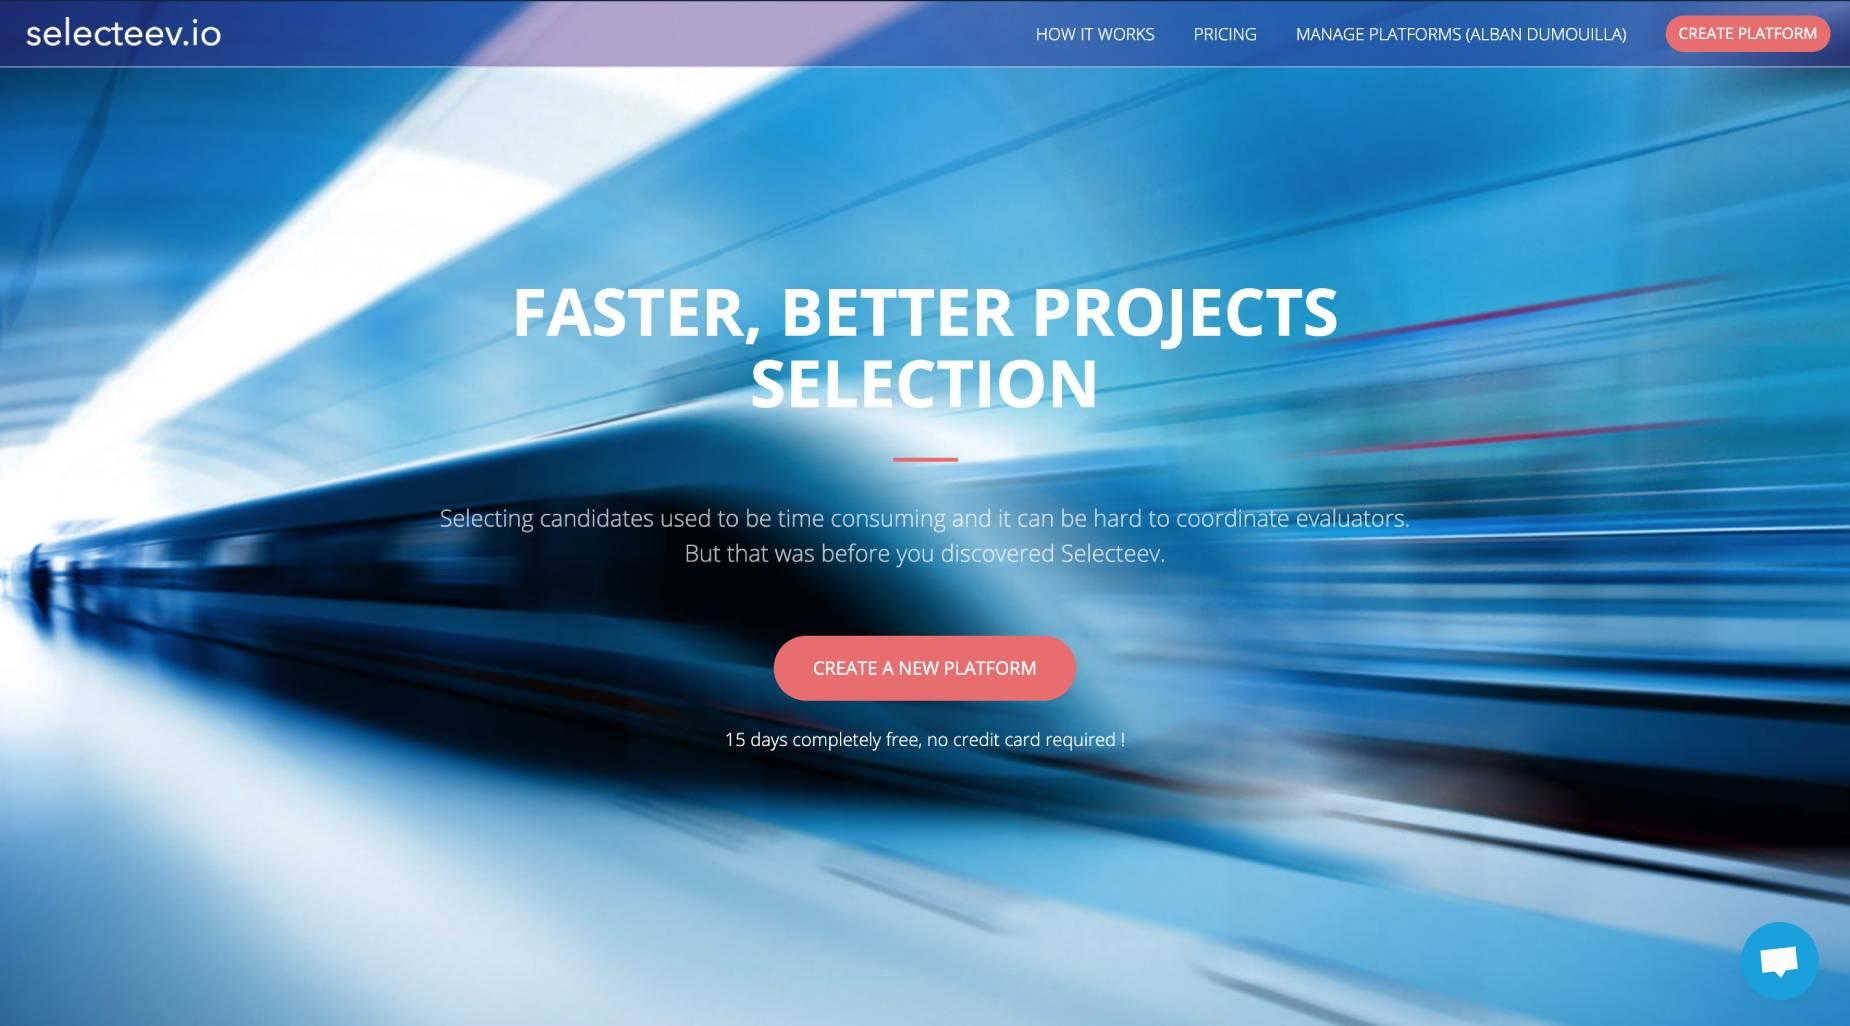 Review Selecteev: Efficient solution for selecting projects or candidates - Appvizer